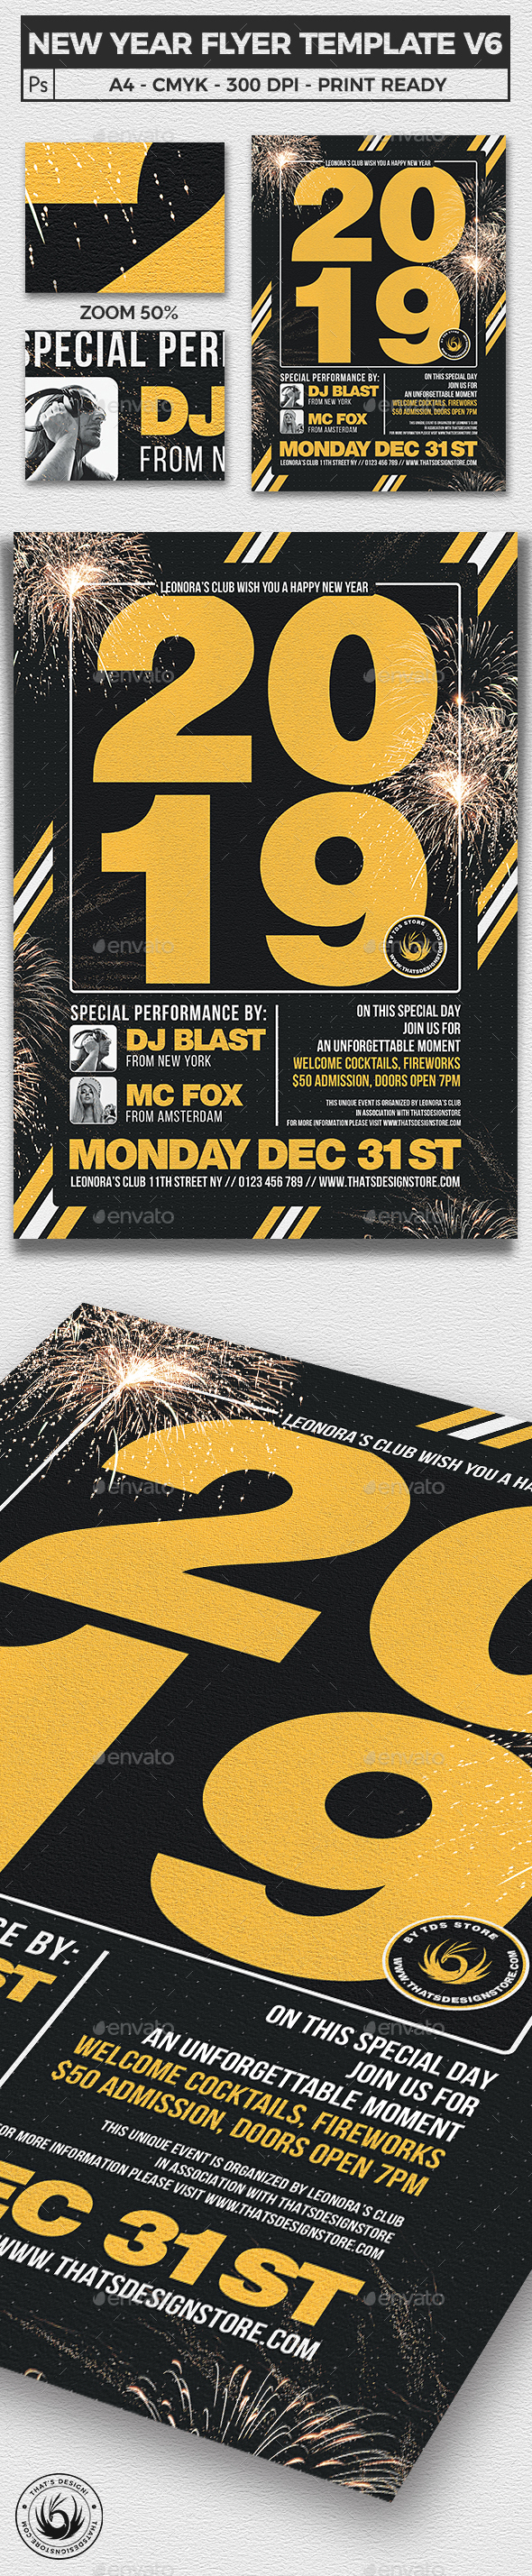 New Year Flyer Template V6 - Clubs & Parties Events